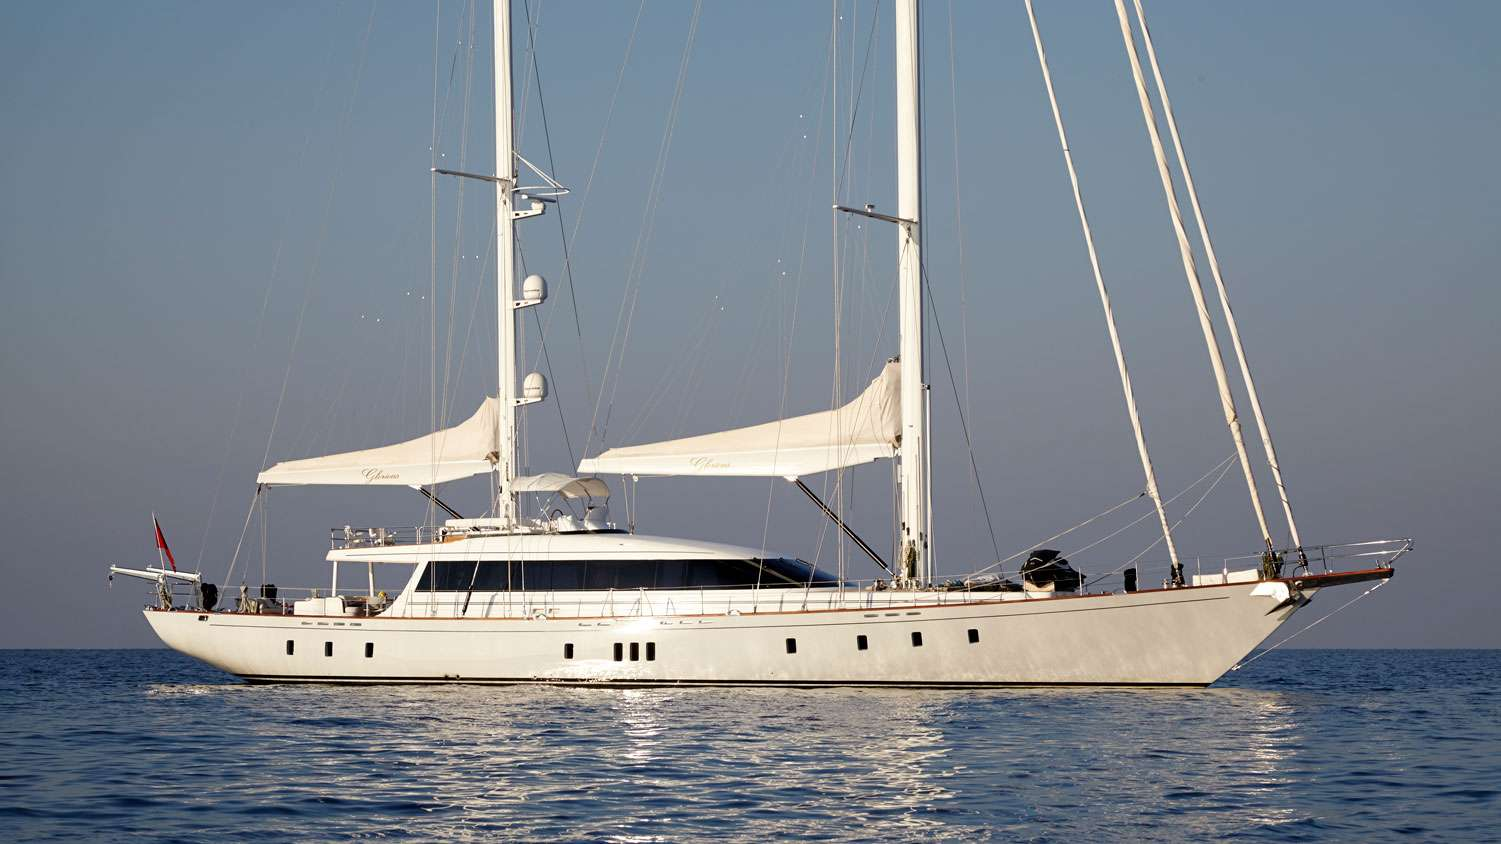 Main image of GLORIOUS II yacht